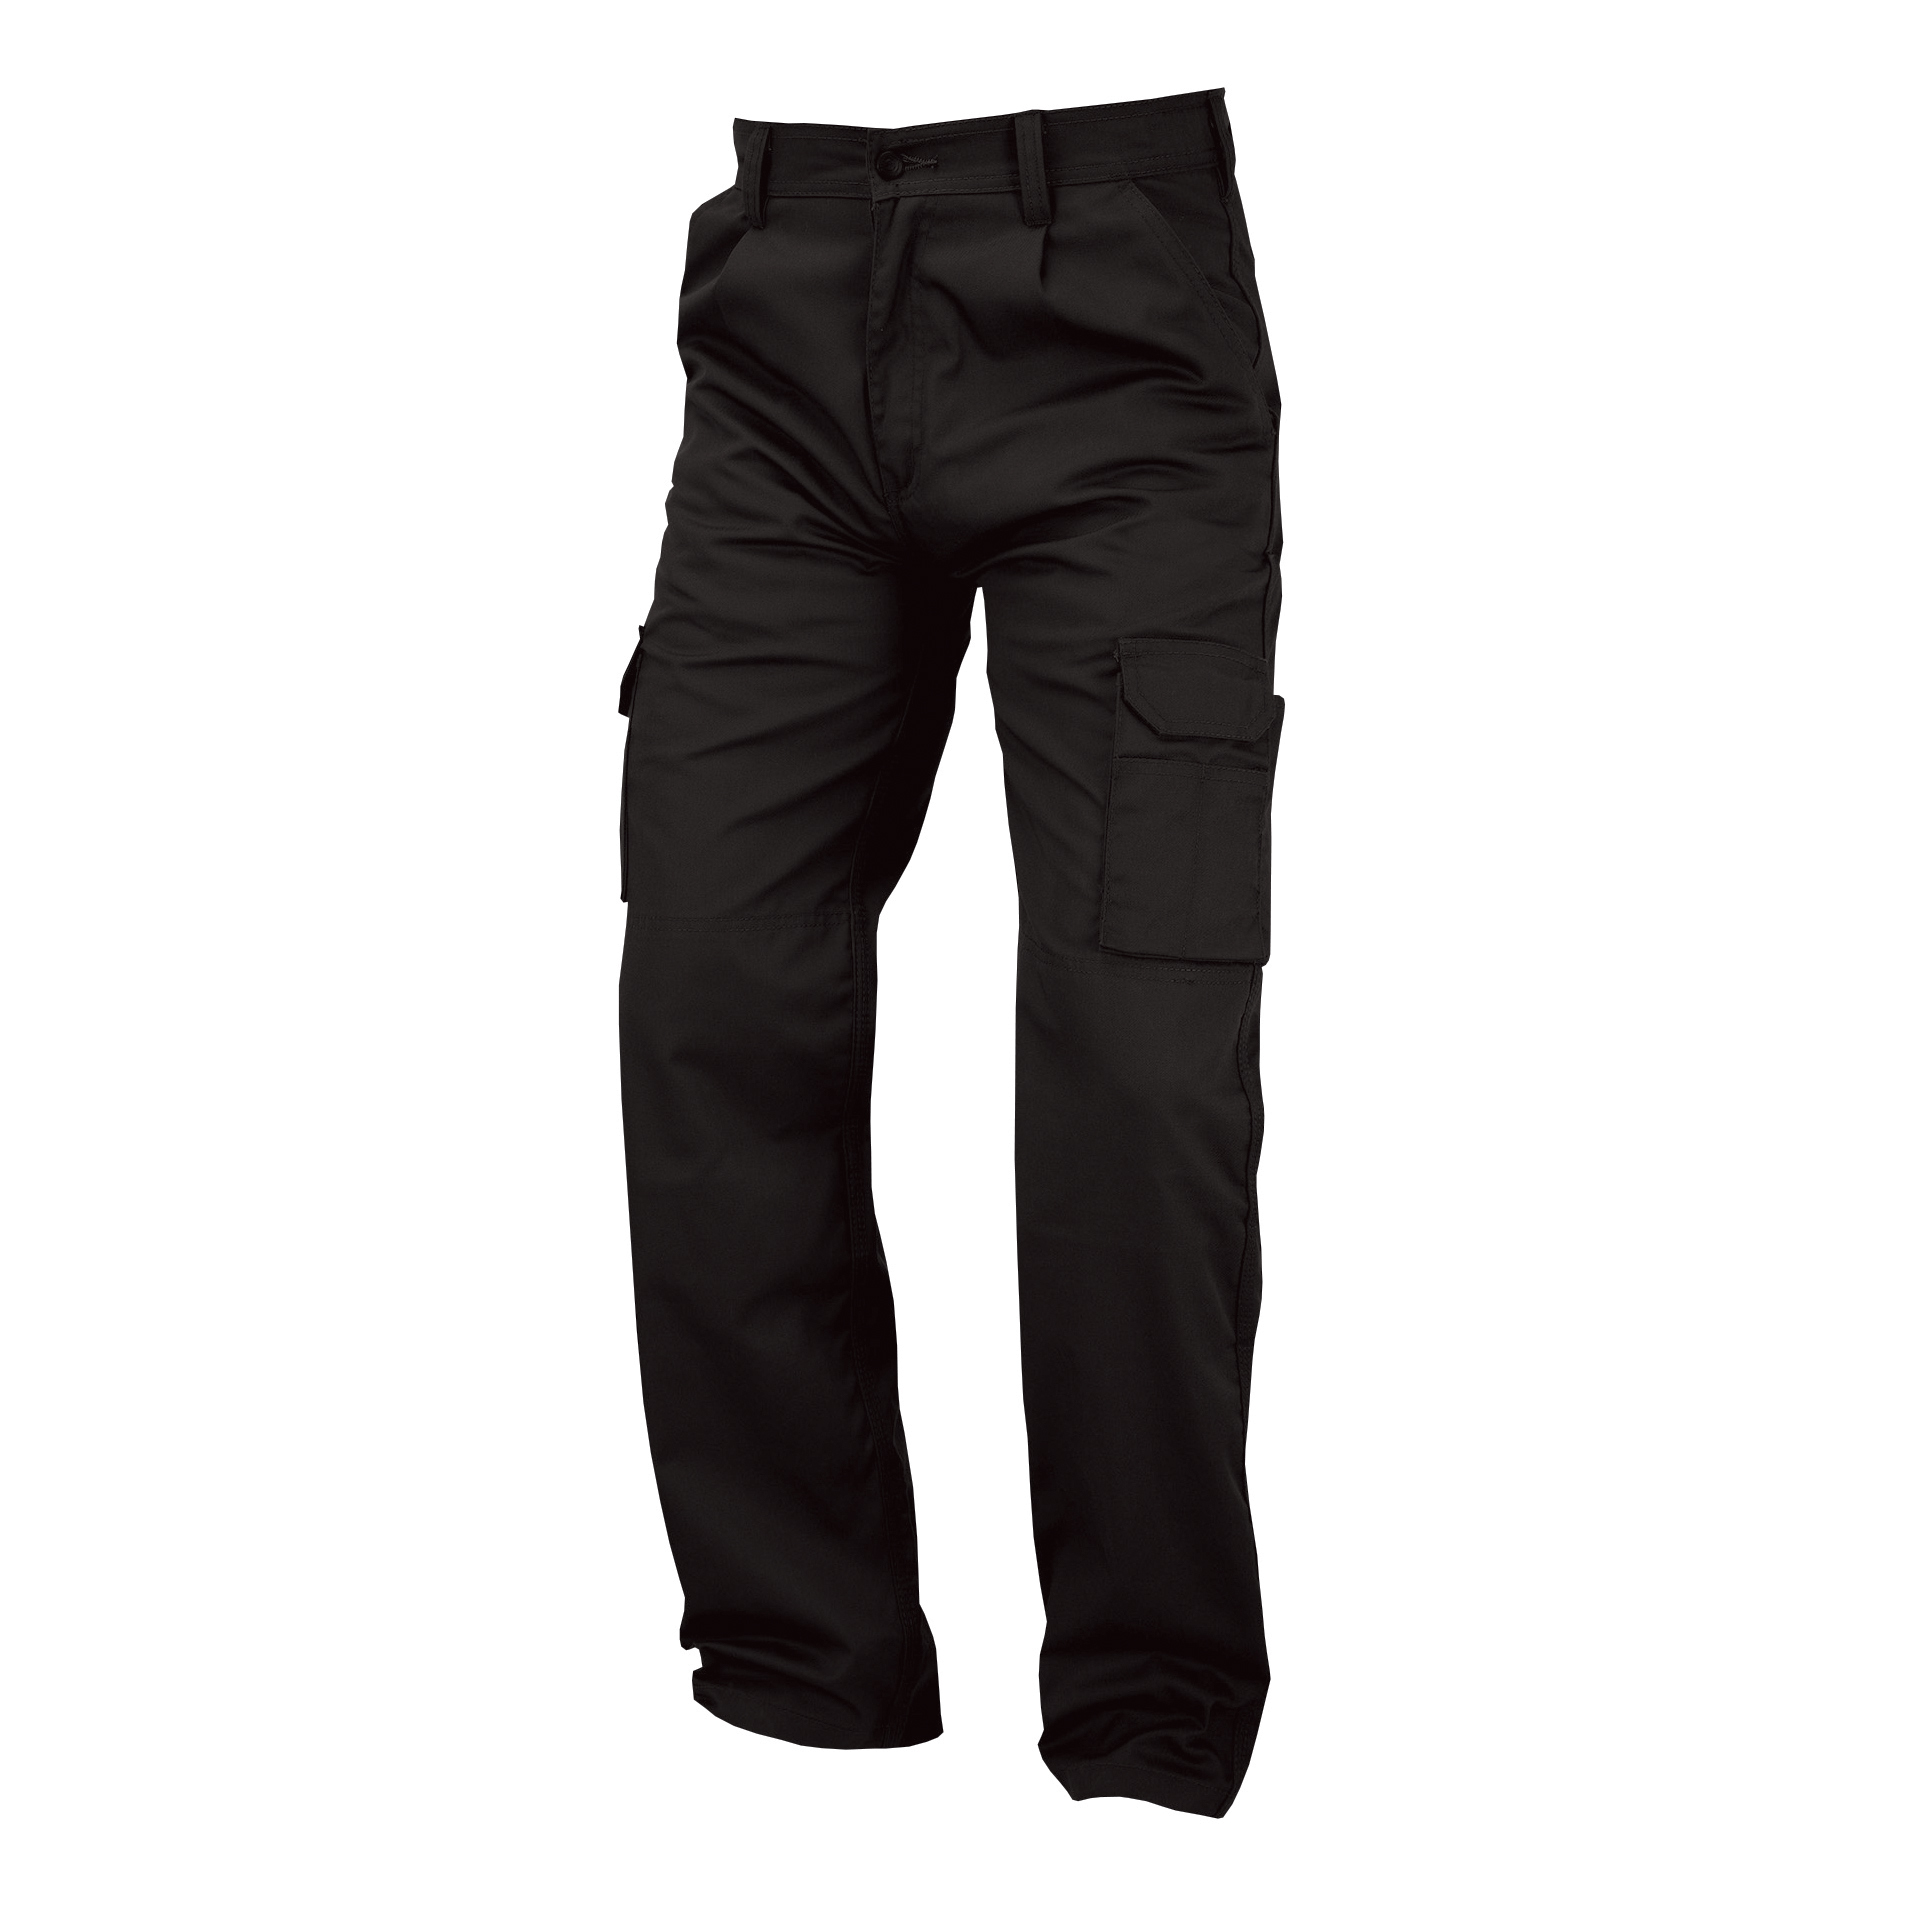 Combat Trousers Polycotton with Pockets Tall Black 34inch 1-3 Days Lead Time